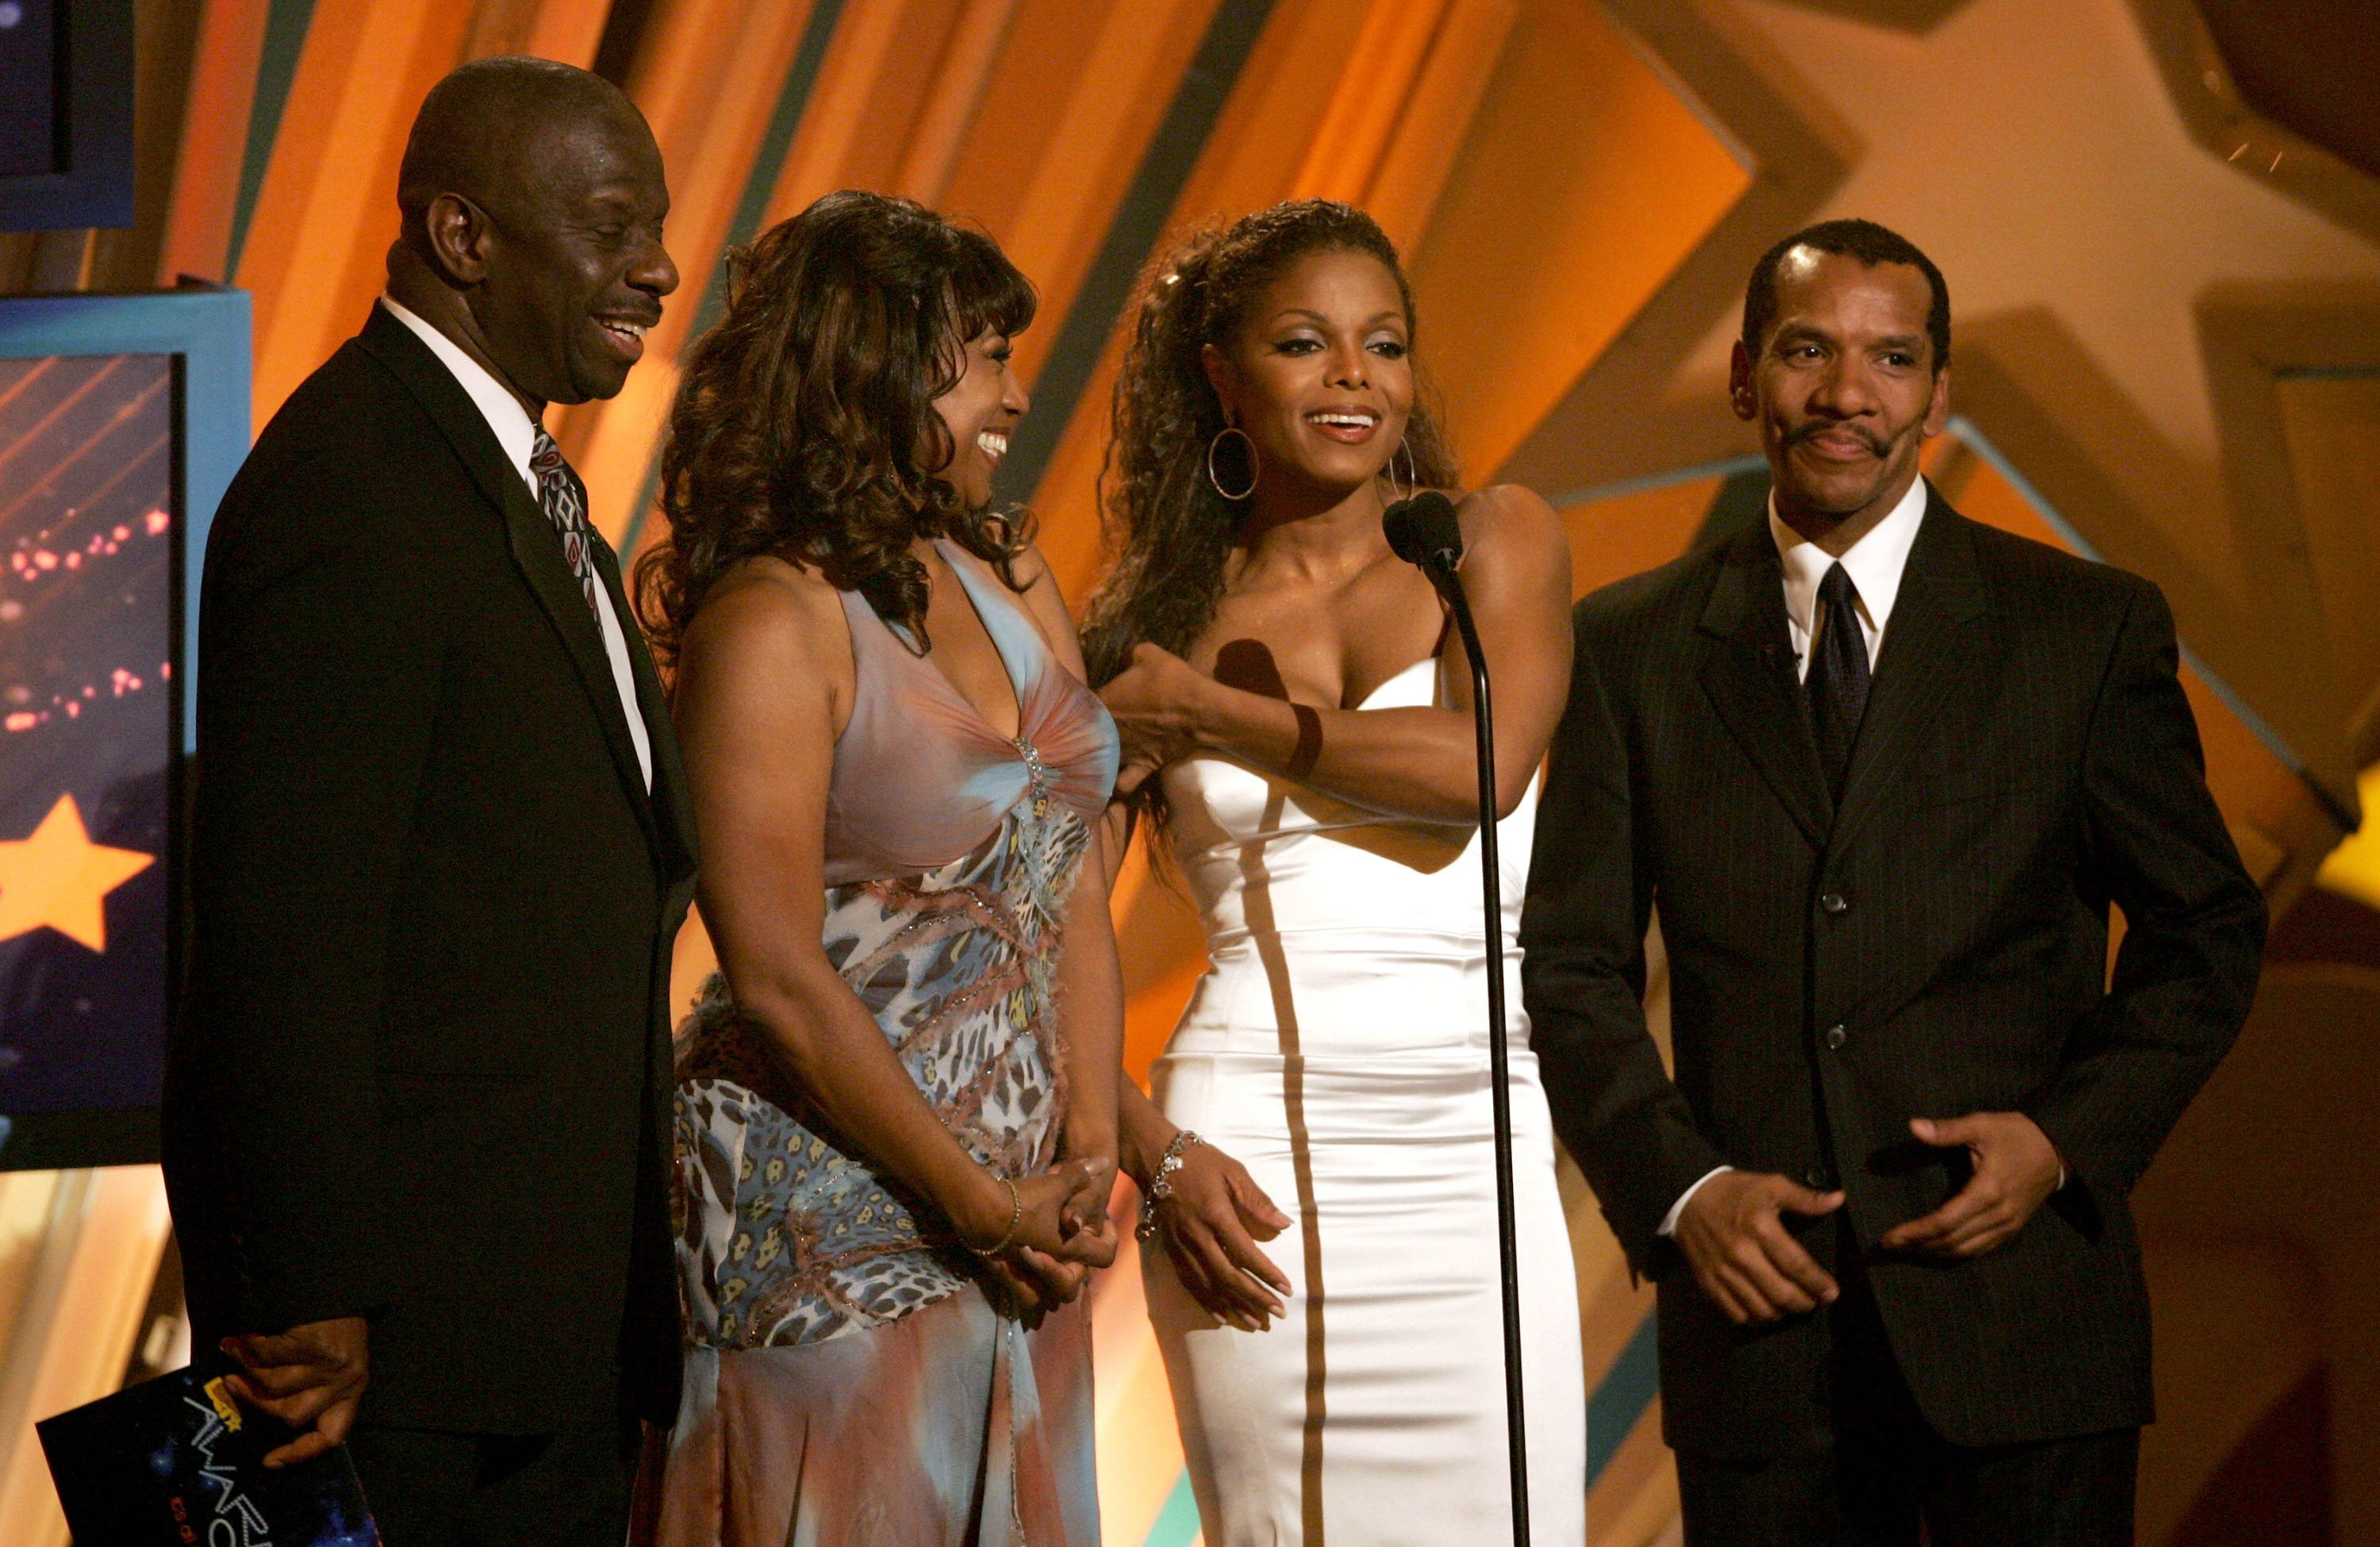 Jimmie Walker, BernNadette Stanis, singer Janet Jackson and actor Ralph Carter present an award onstage at the 2006 BET Awards on June 27, 2006 in Los Angeles, California. | Source: Getty Images